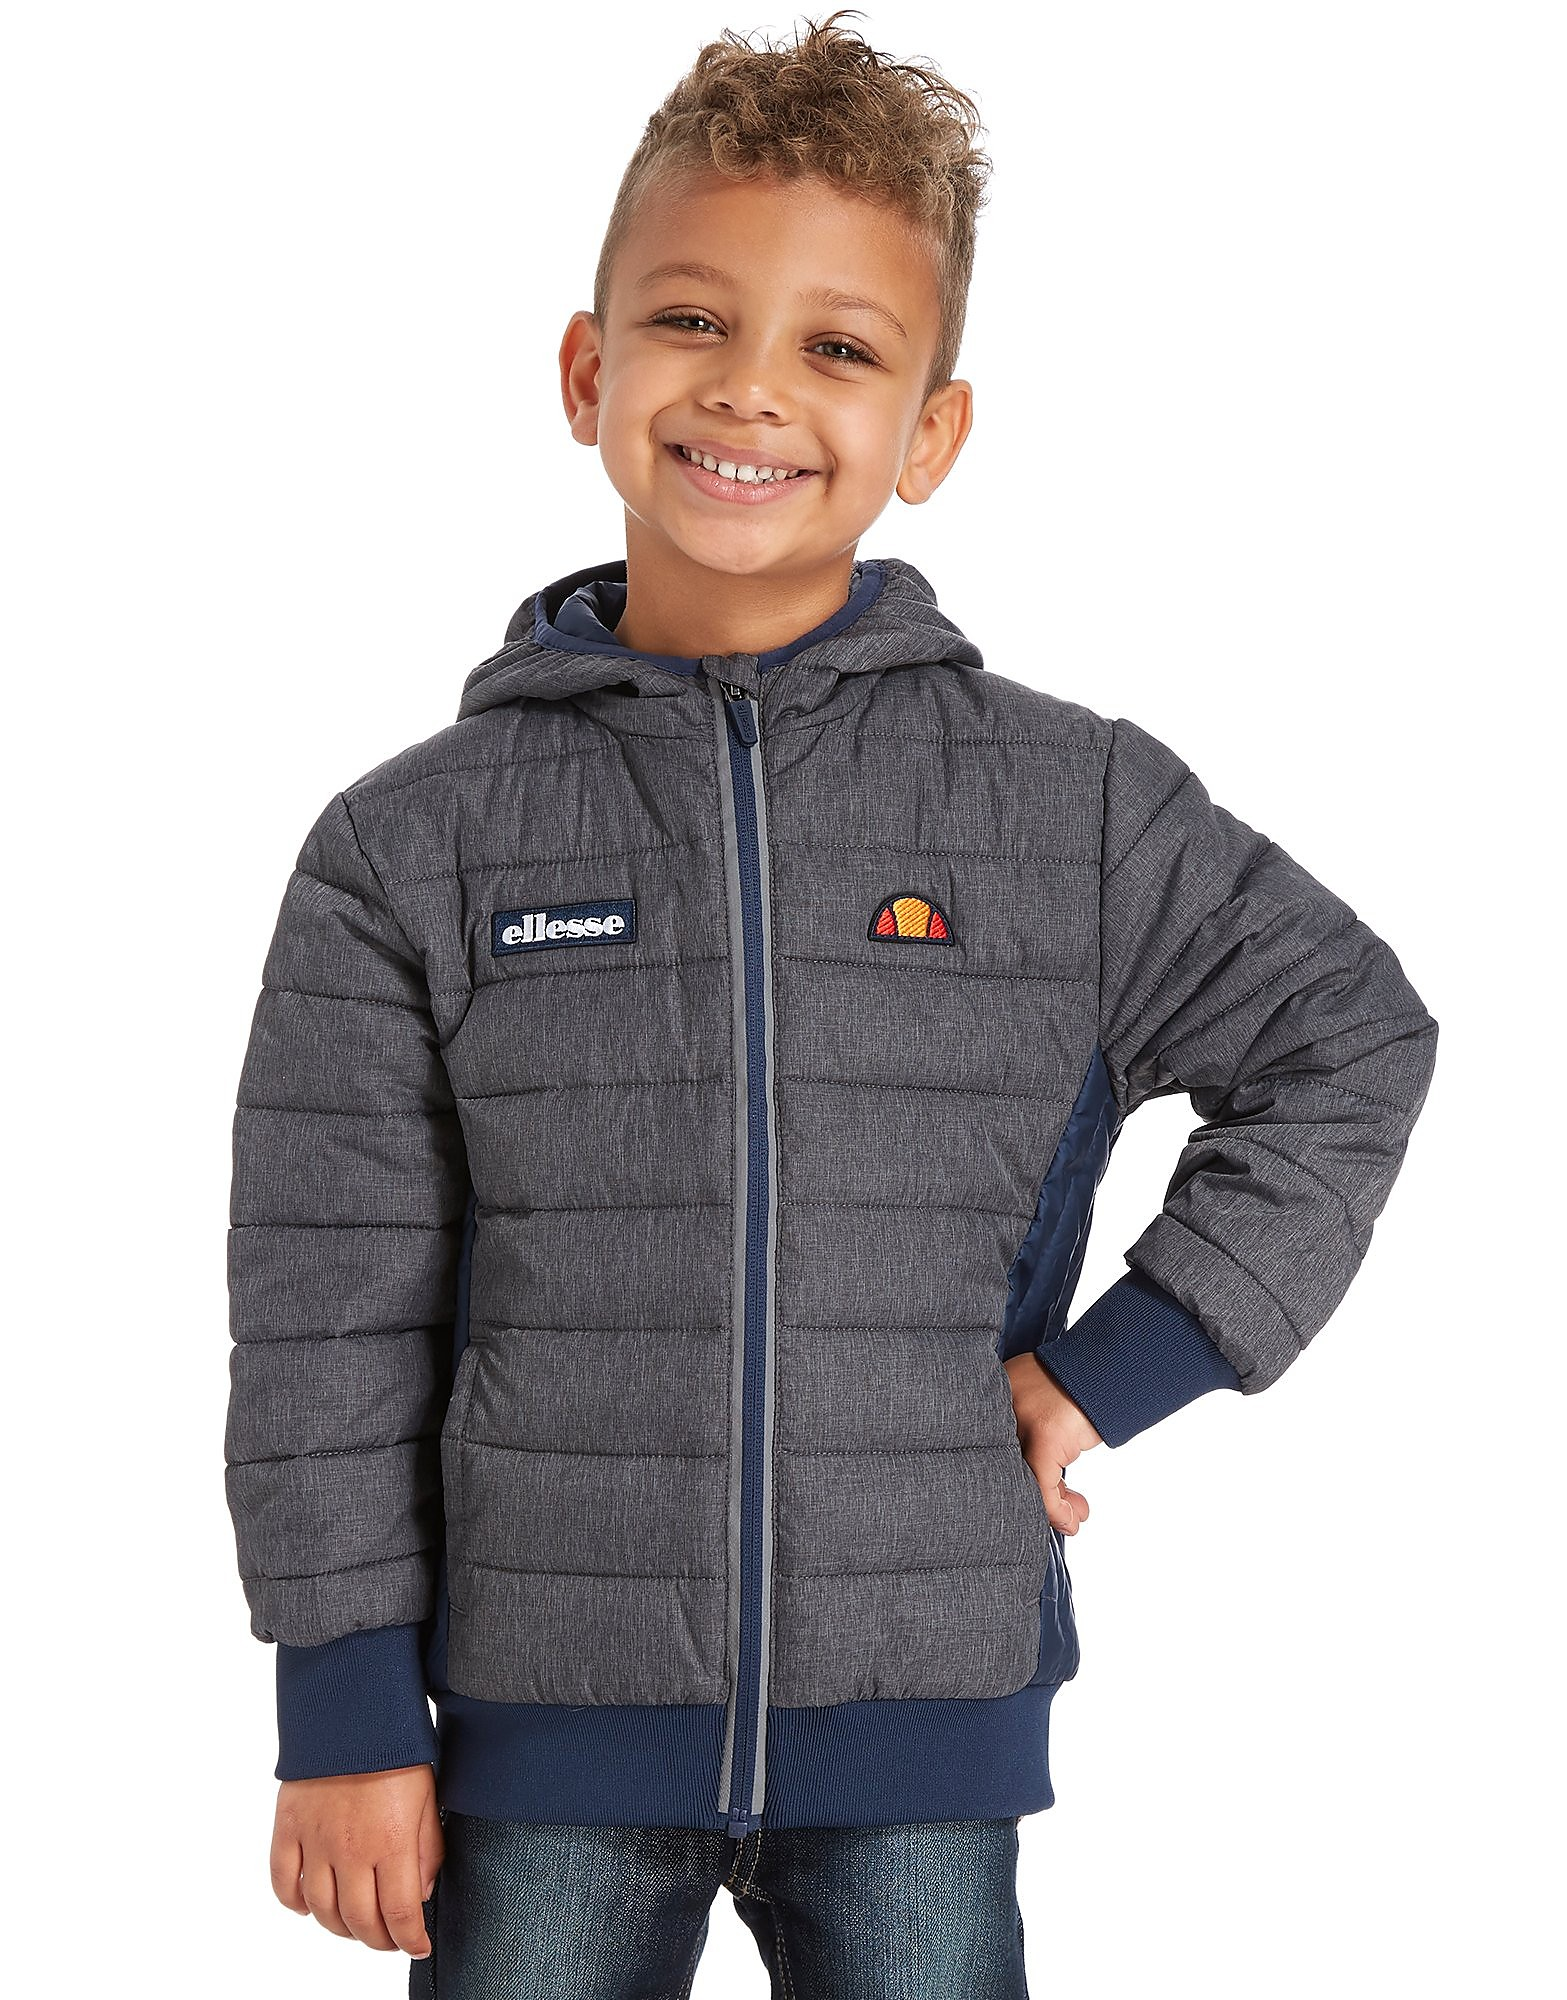 Ellesse Mustri Jacket Children